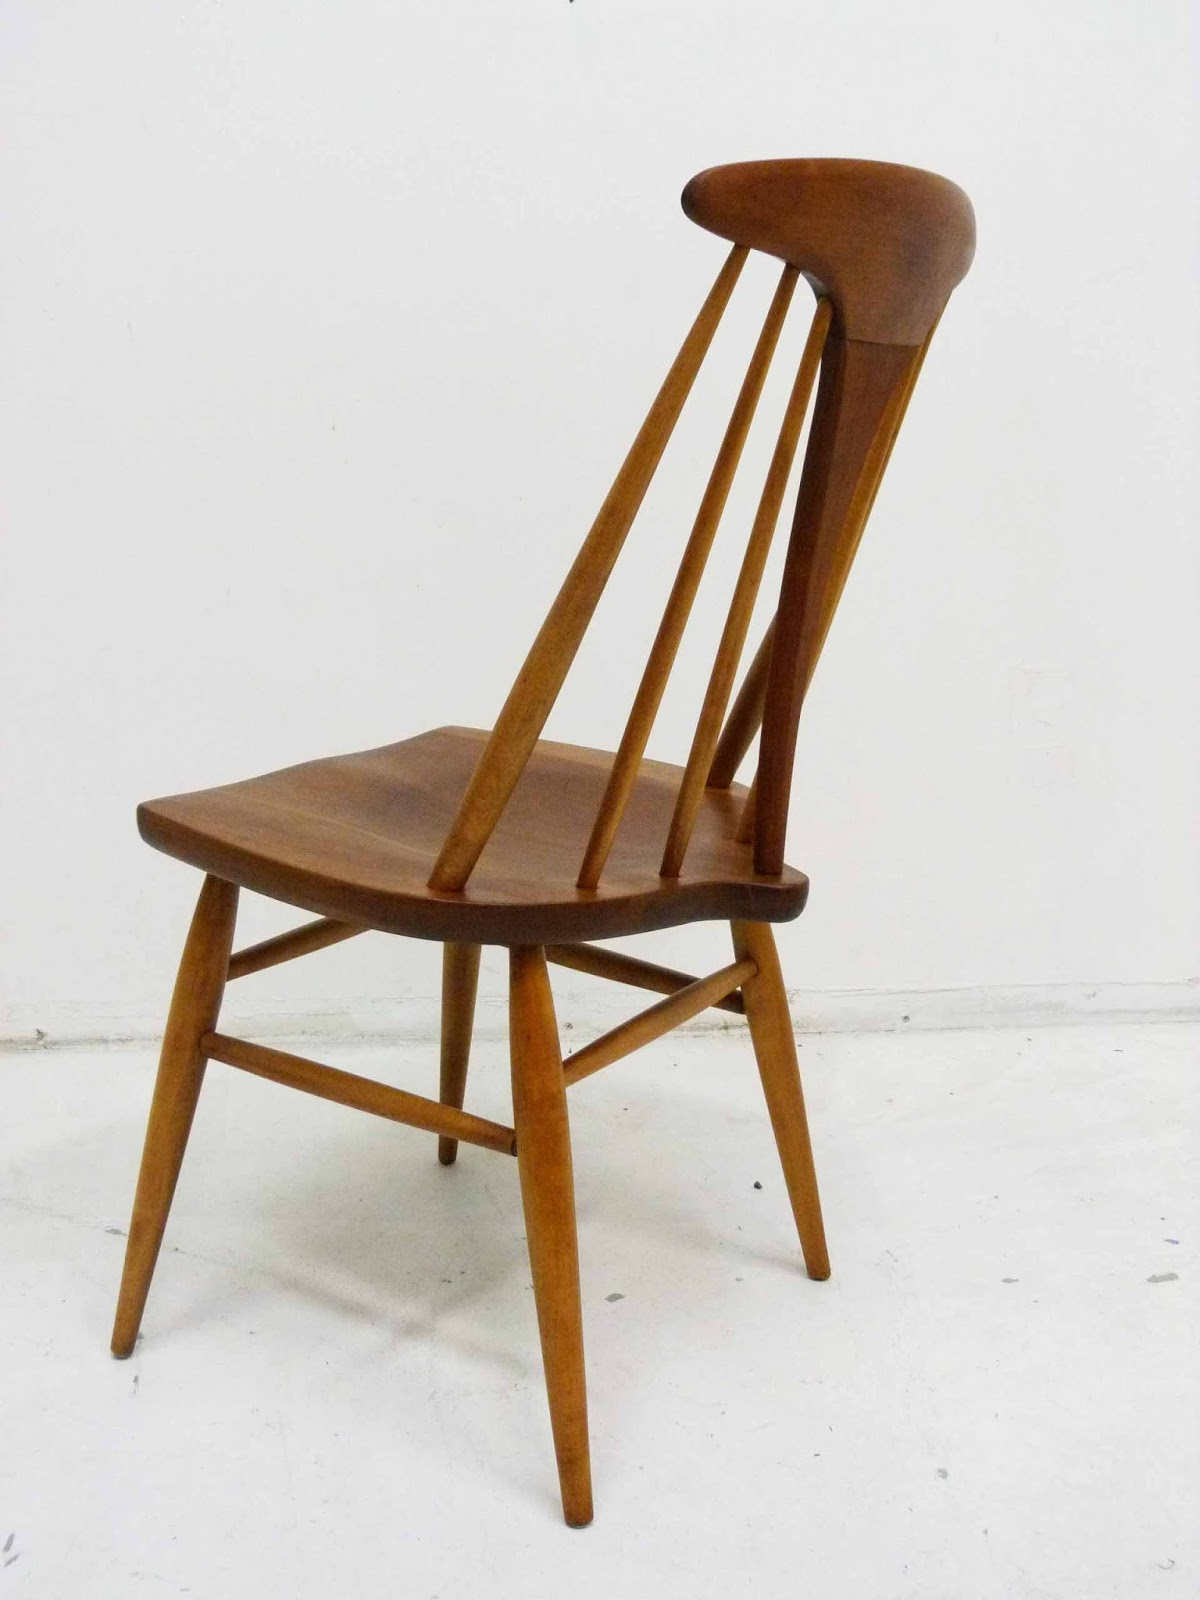 heywood wakefield chairs discontinued dining room modern mid century danish vintage furniture shop used